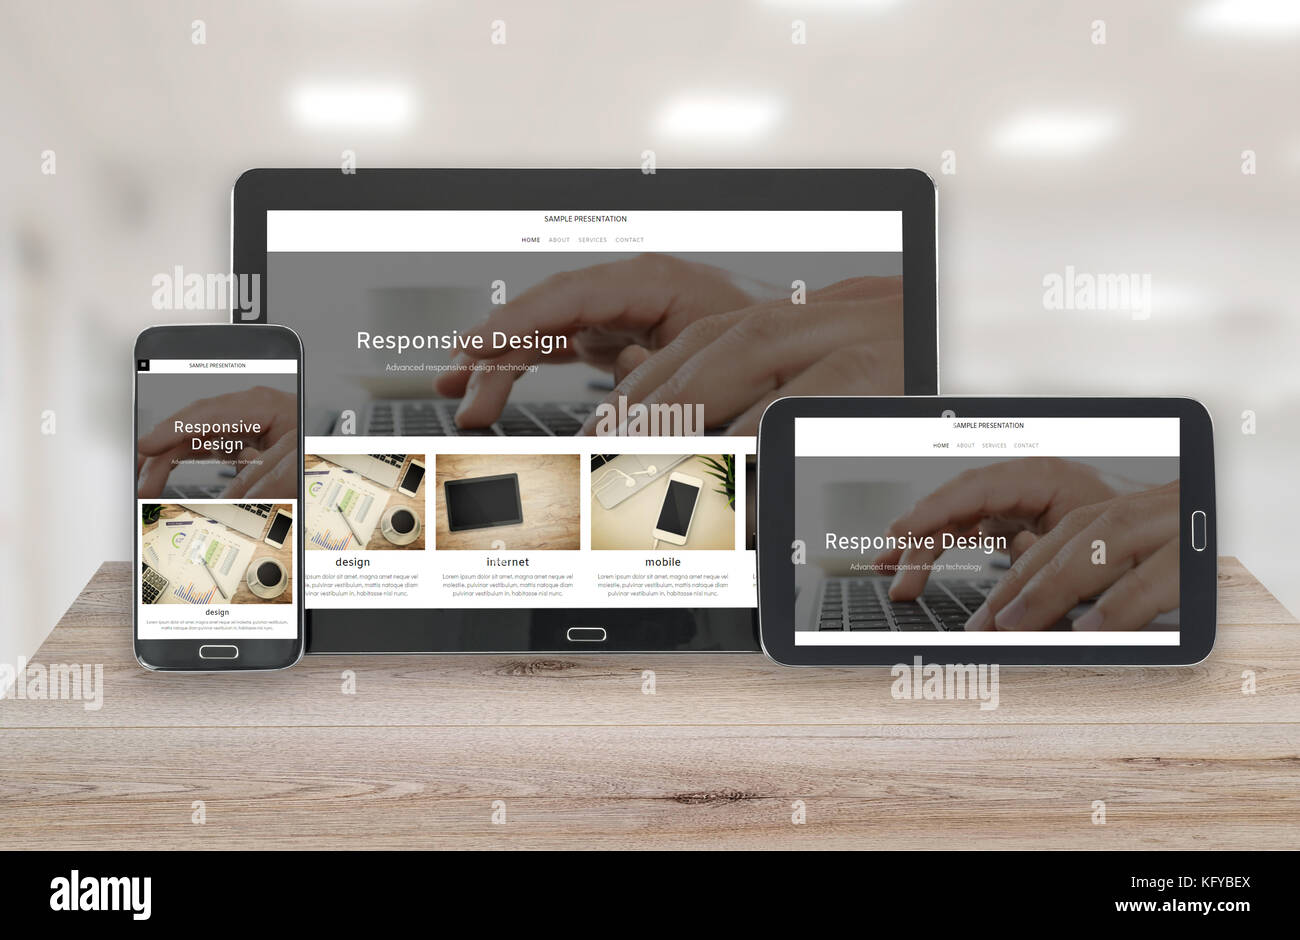 Concept image of multi device technology for responsive design presentation - digital tablet and smartphone in various - Stock Image